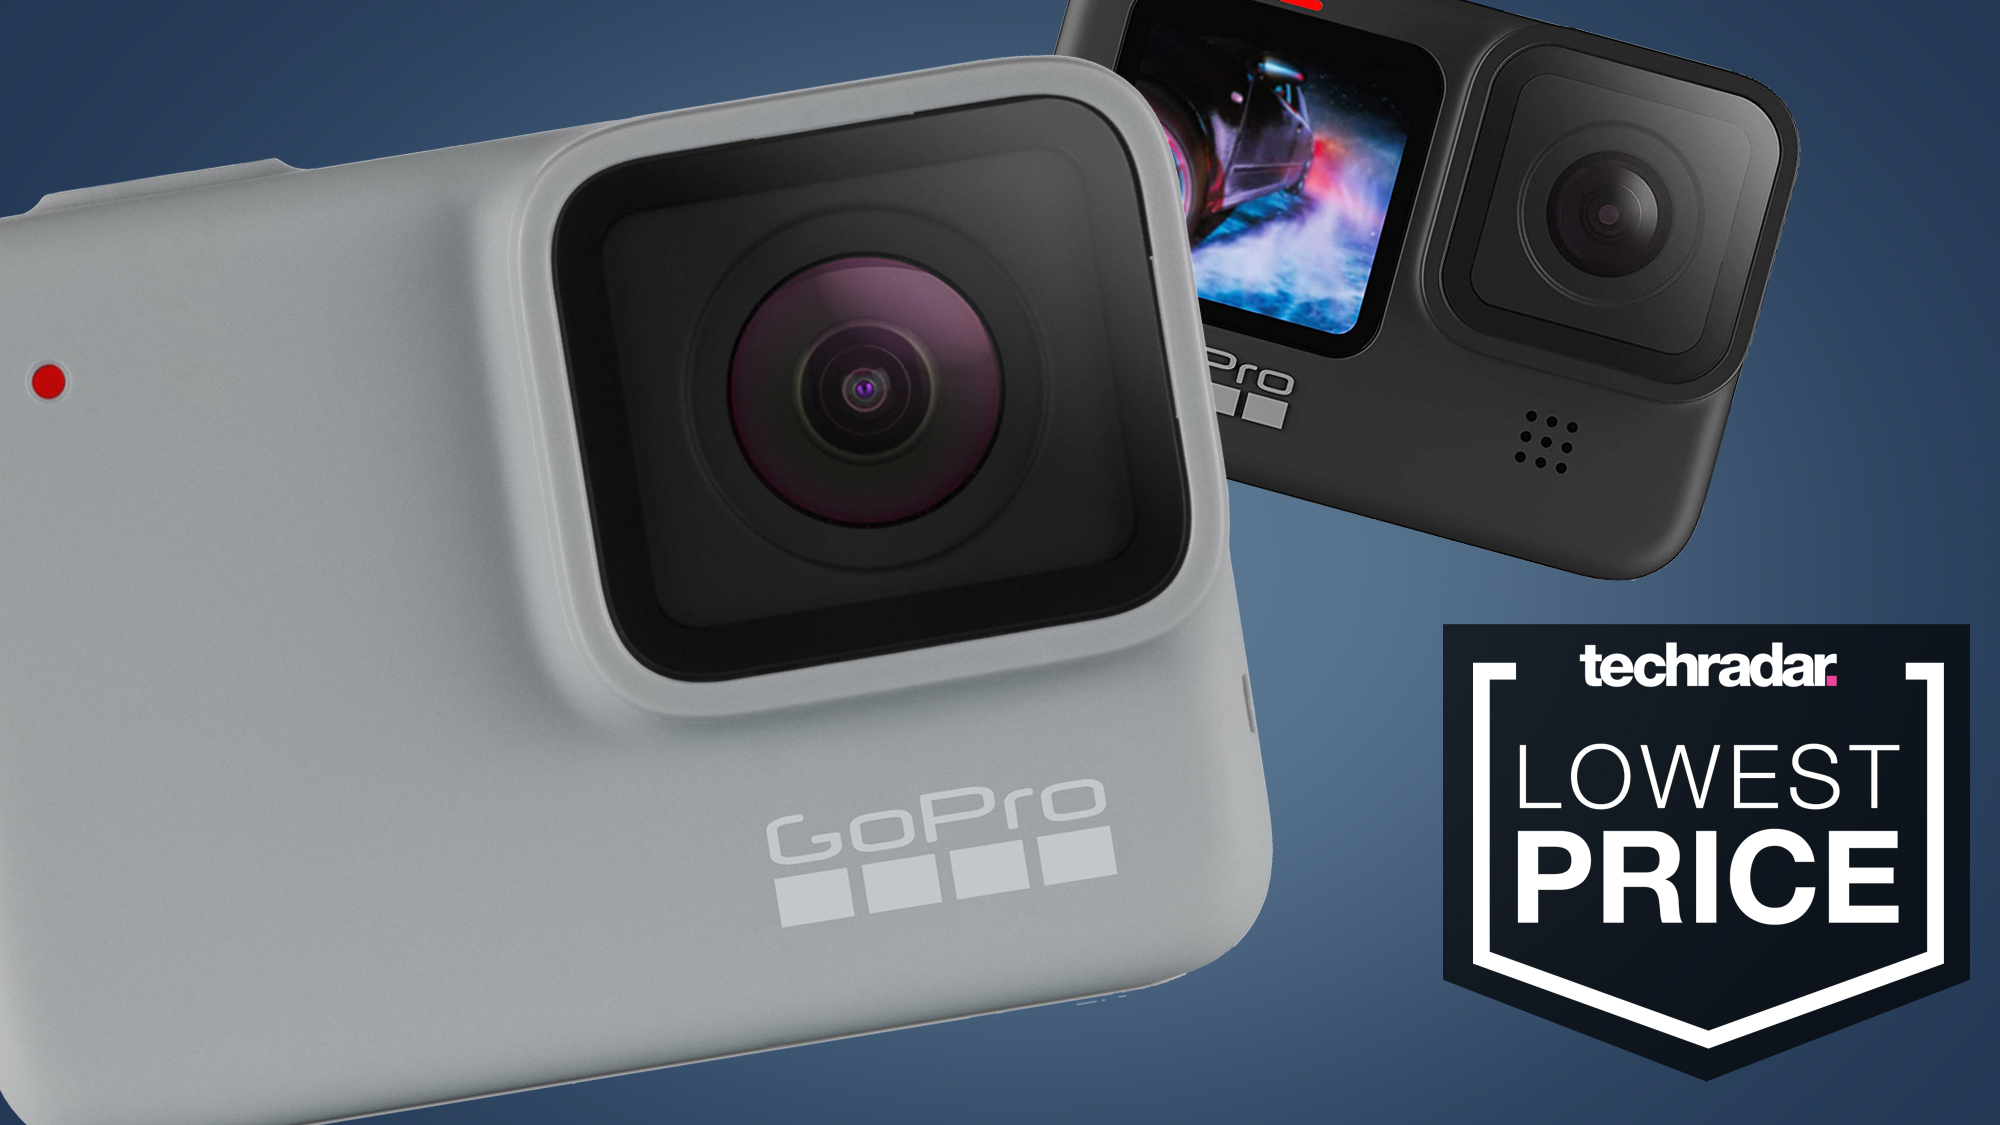 Black Friday Gopro Deals All The Best Live Deals Including 25 Off The Hero 8 Black Techradar